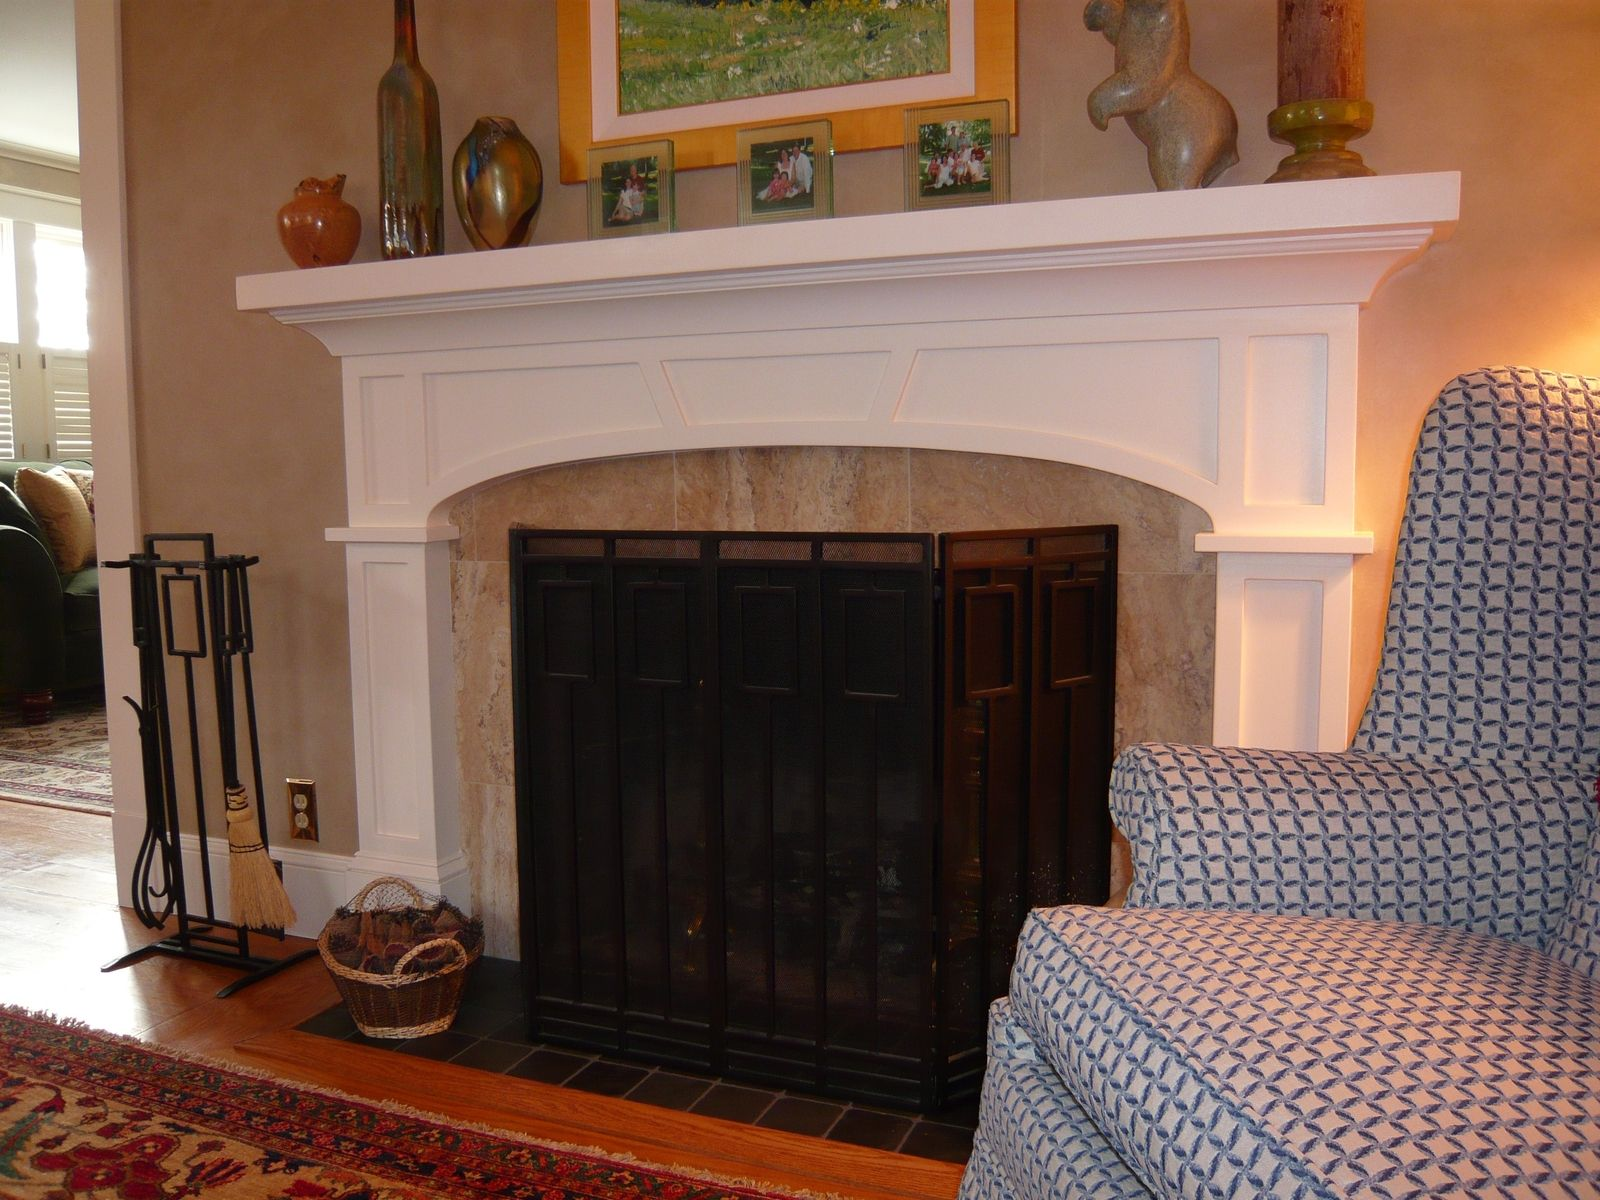 DOUBLE CLICK on photo above to see larger image of entire unit.  The elliptical arch gives this fireplace surround an elegant